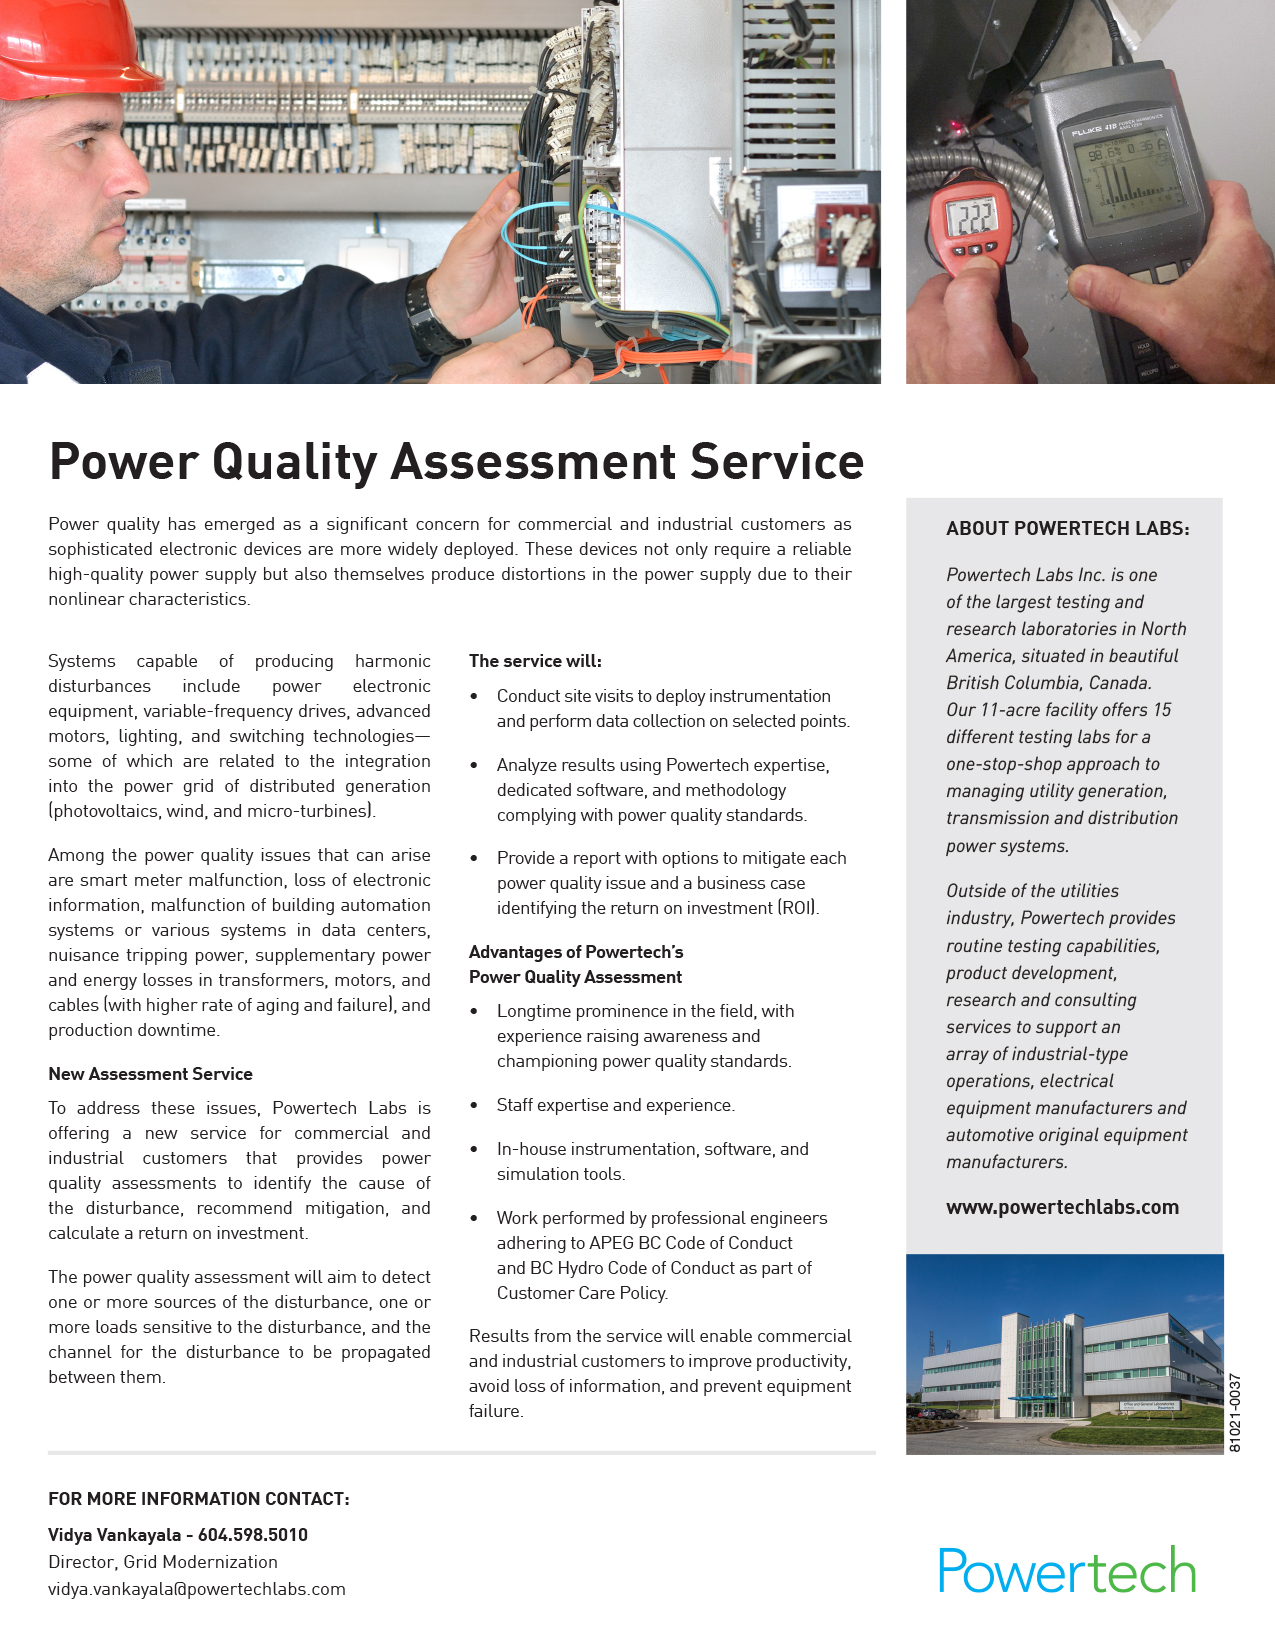 Power Quality Assessment Services PDF →